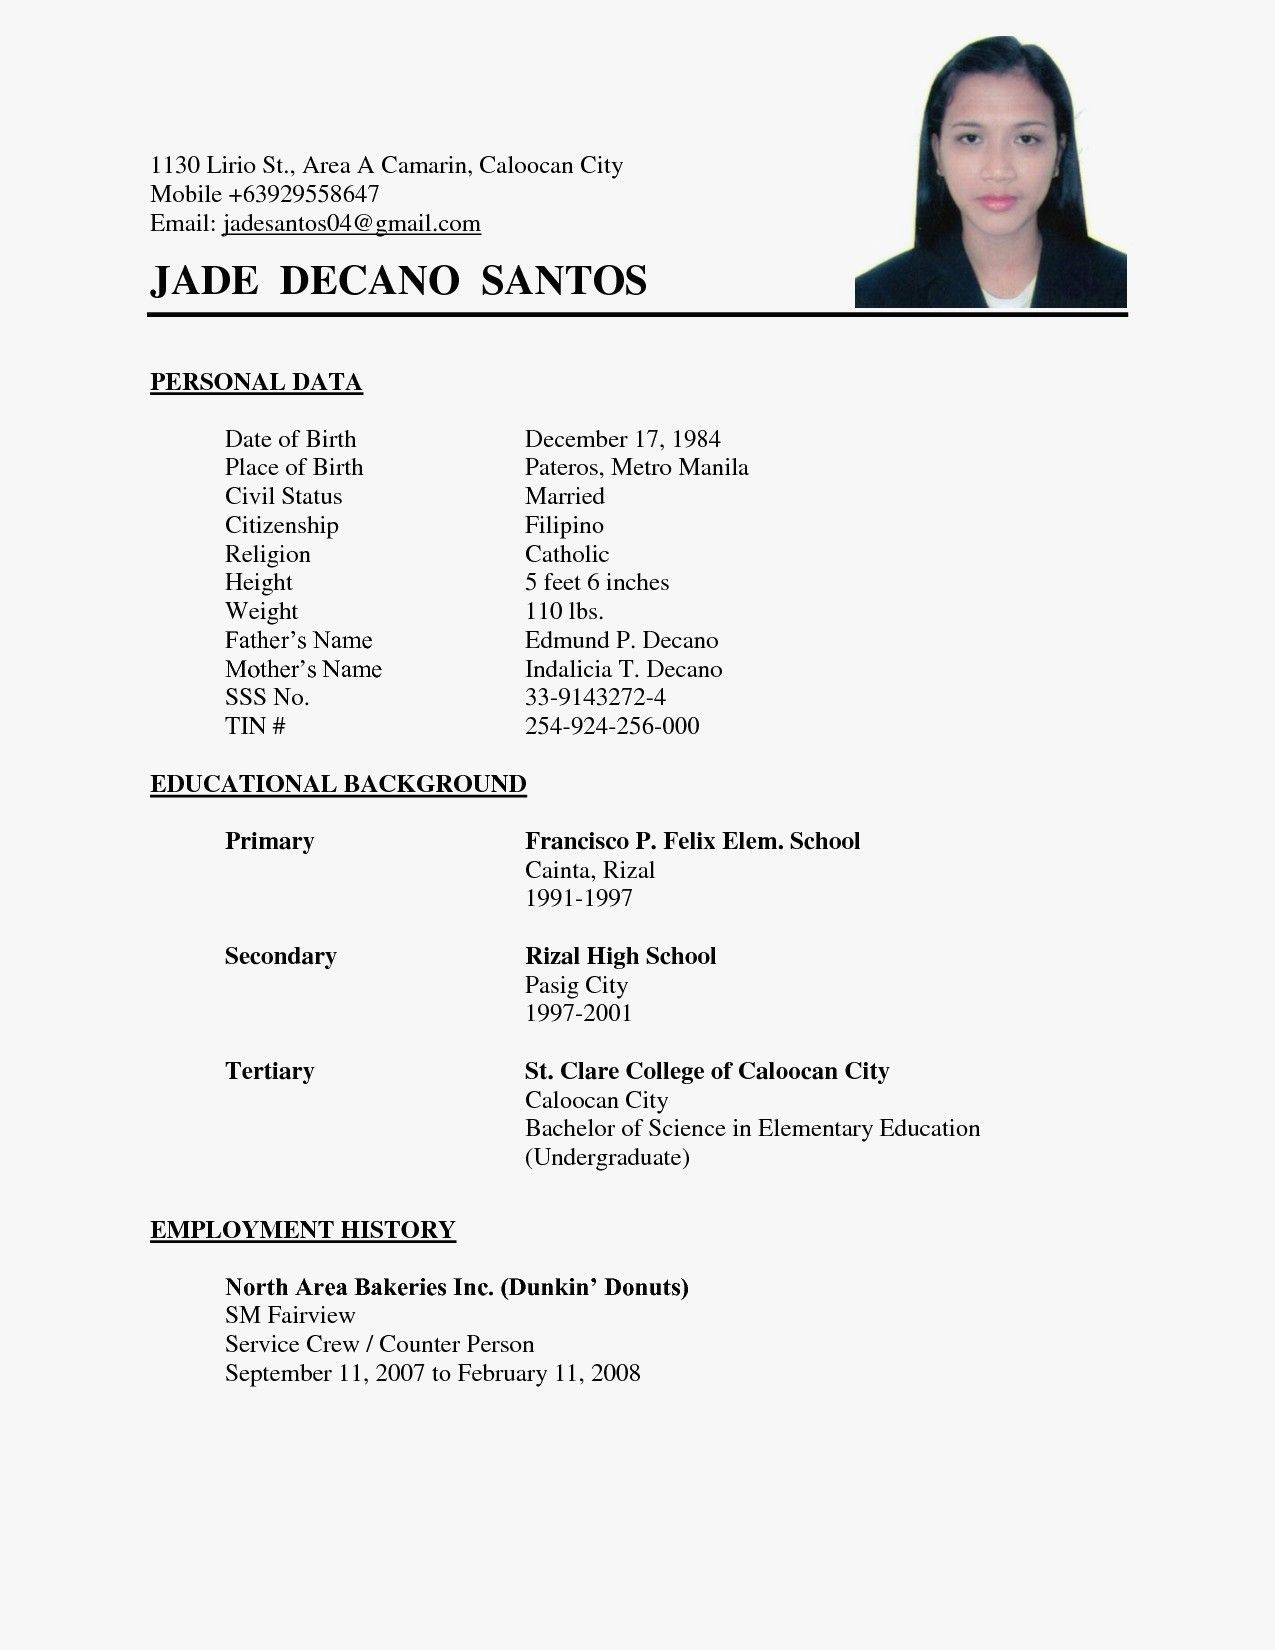 Job Application Simple Resume Format Best Resume Examples